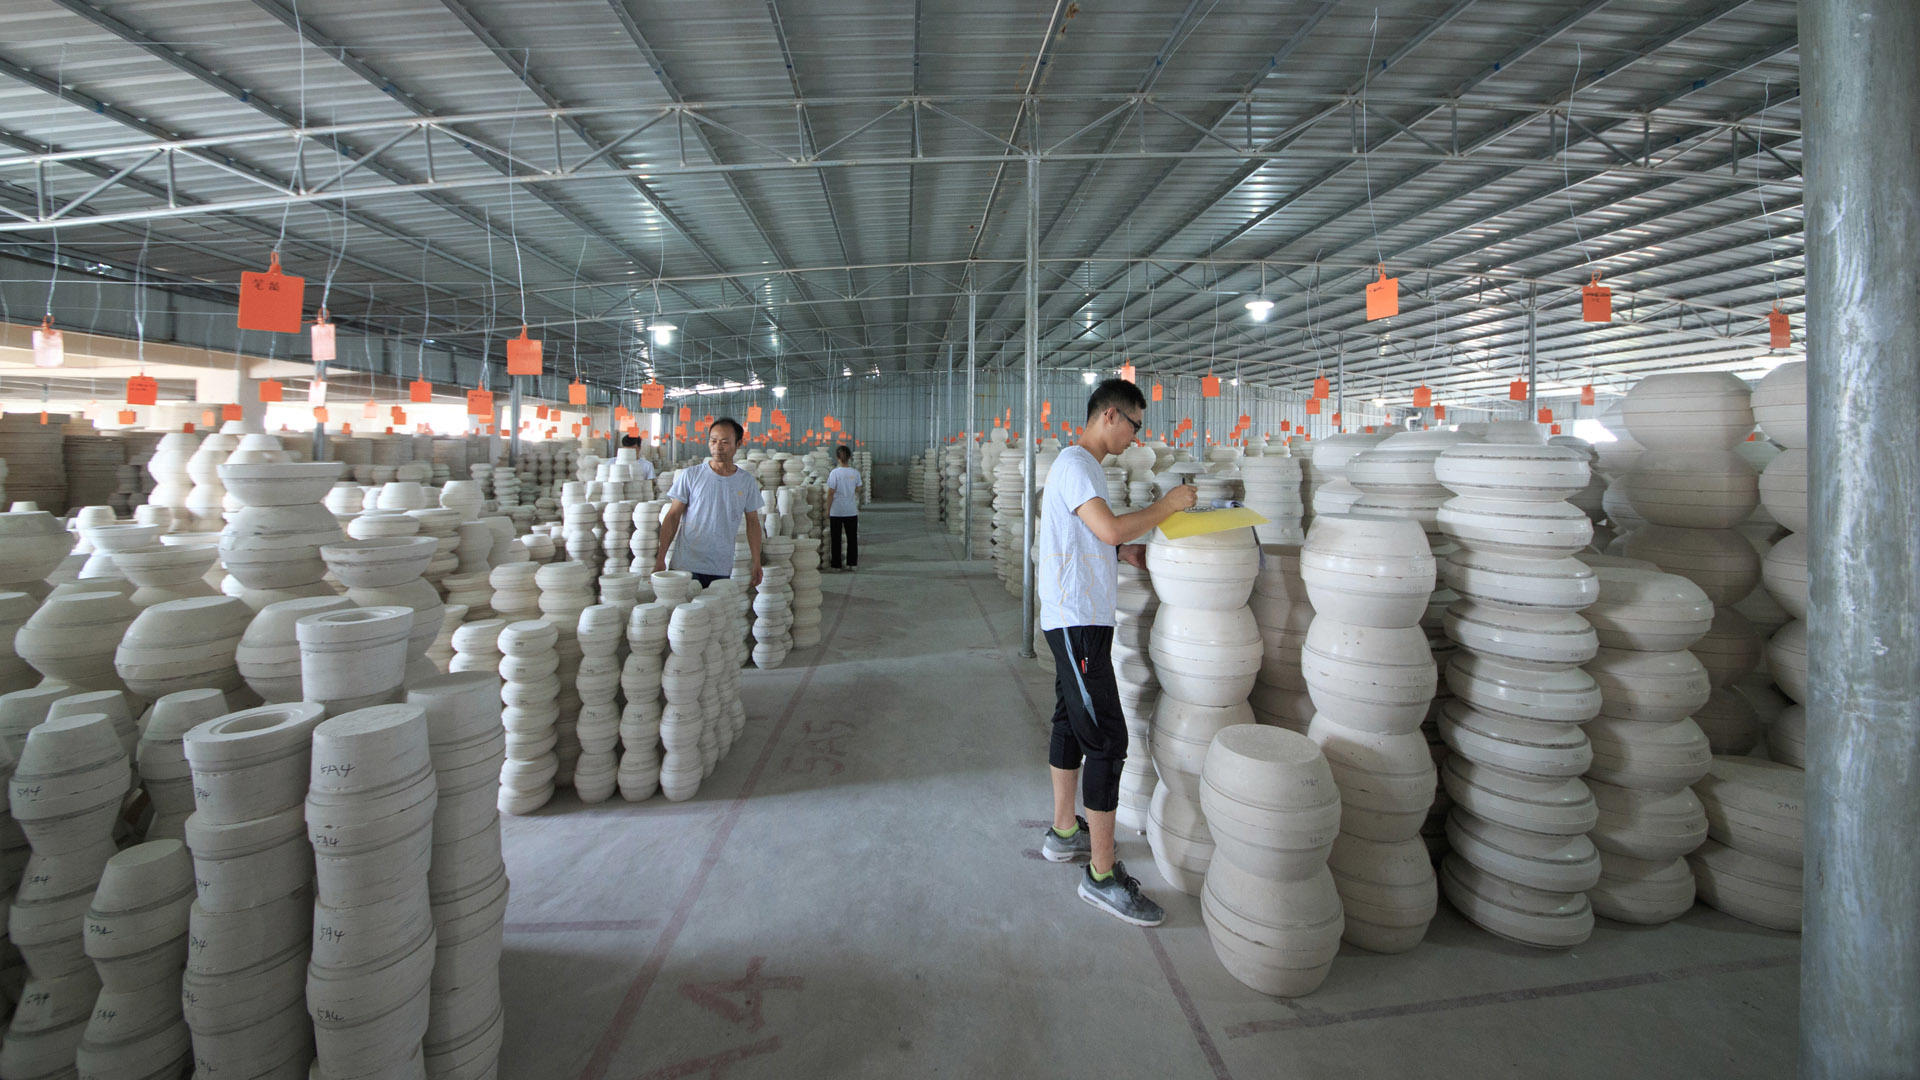 The second floor of the two eight Ceramics Factory - Molded Warehouse